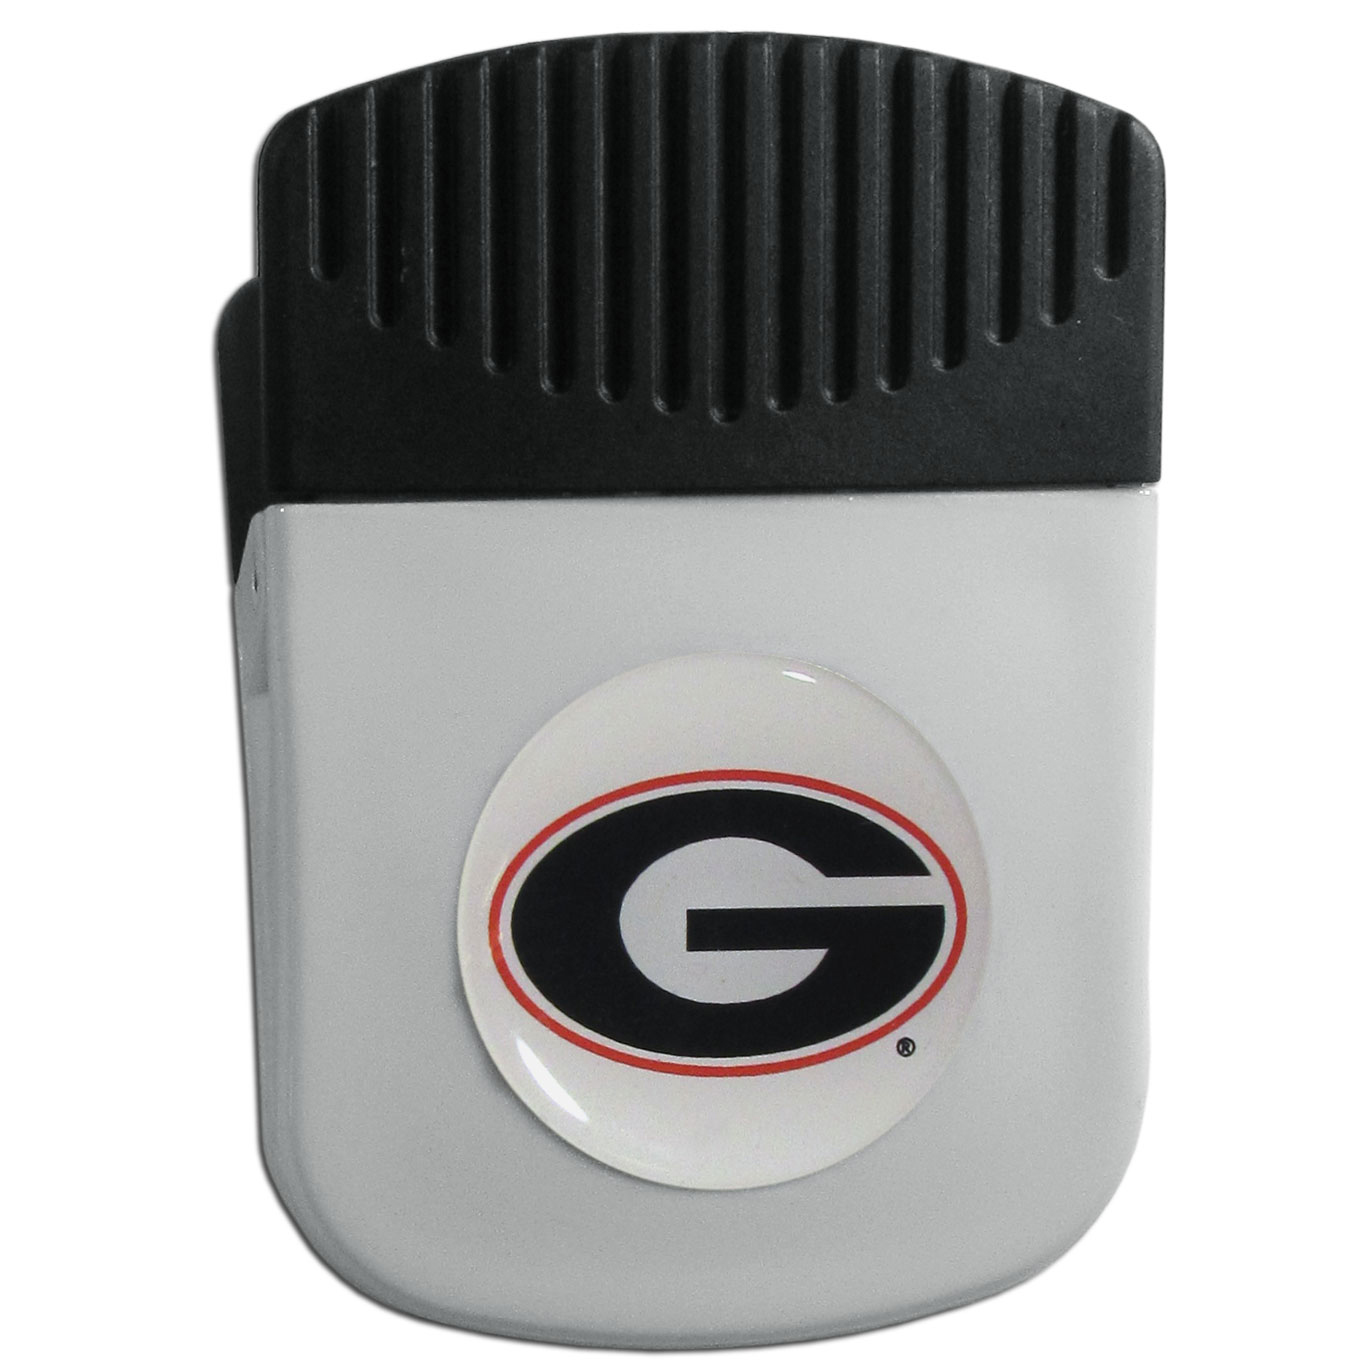 Georgia Bulldogs Chip Clip Magnet - Use this attractive clip magnet to hold memos, photos or appointment cards on the fridge or take it down keep use it to clip bags shut. The magnet features a domed Georgia Bulldogs logo.